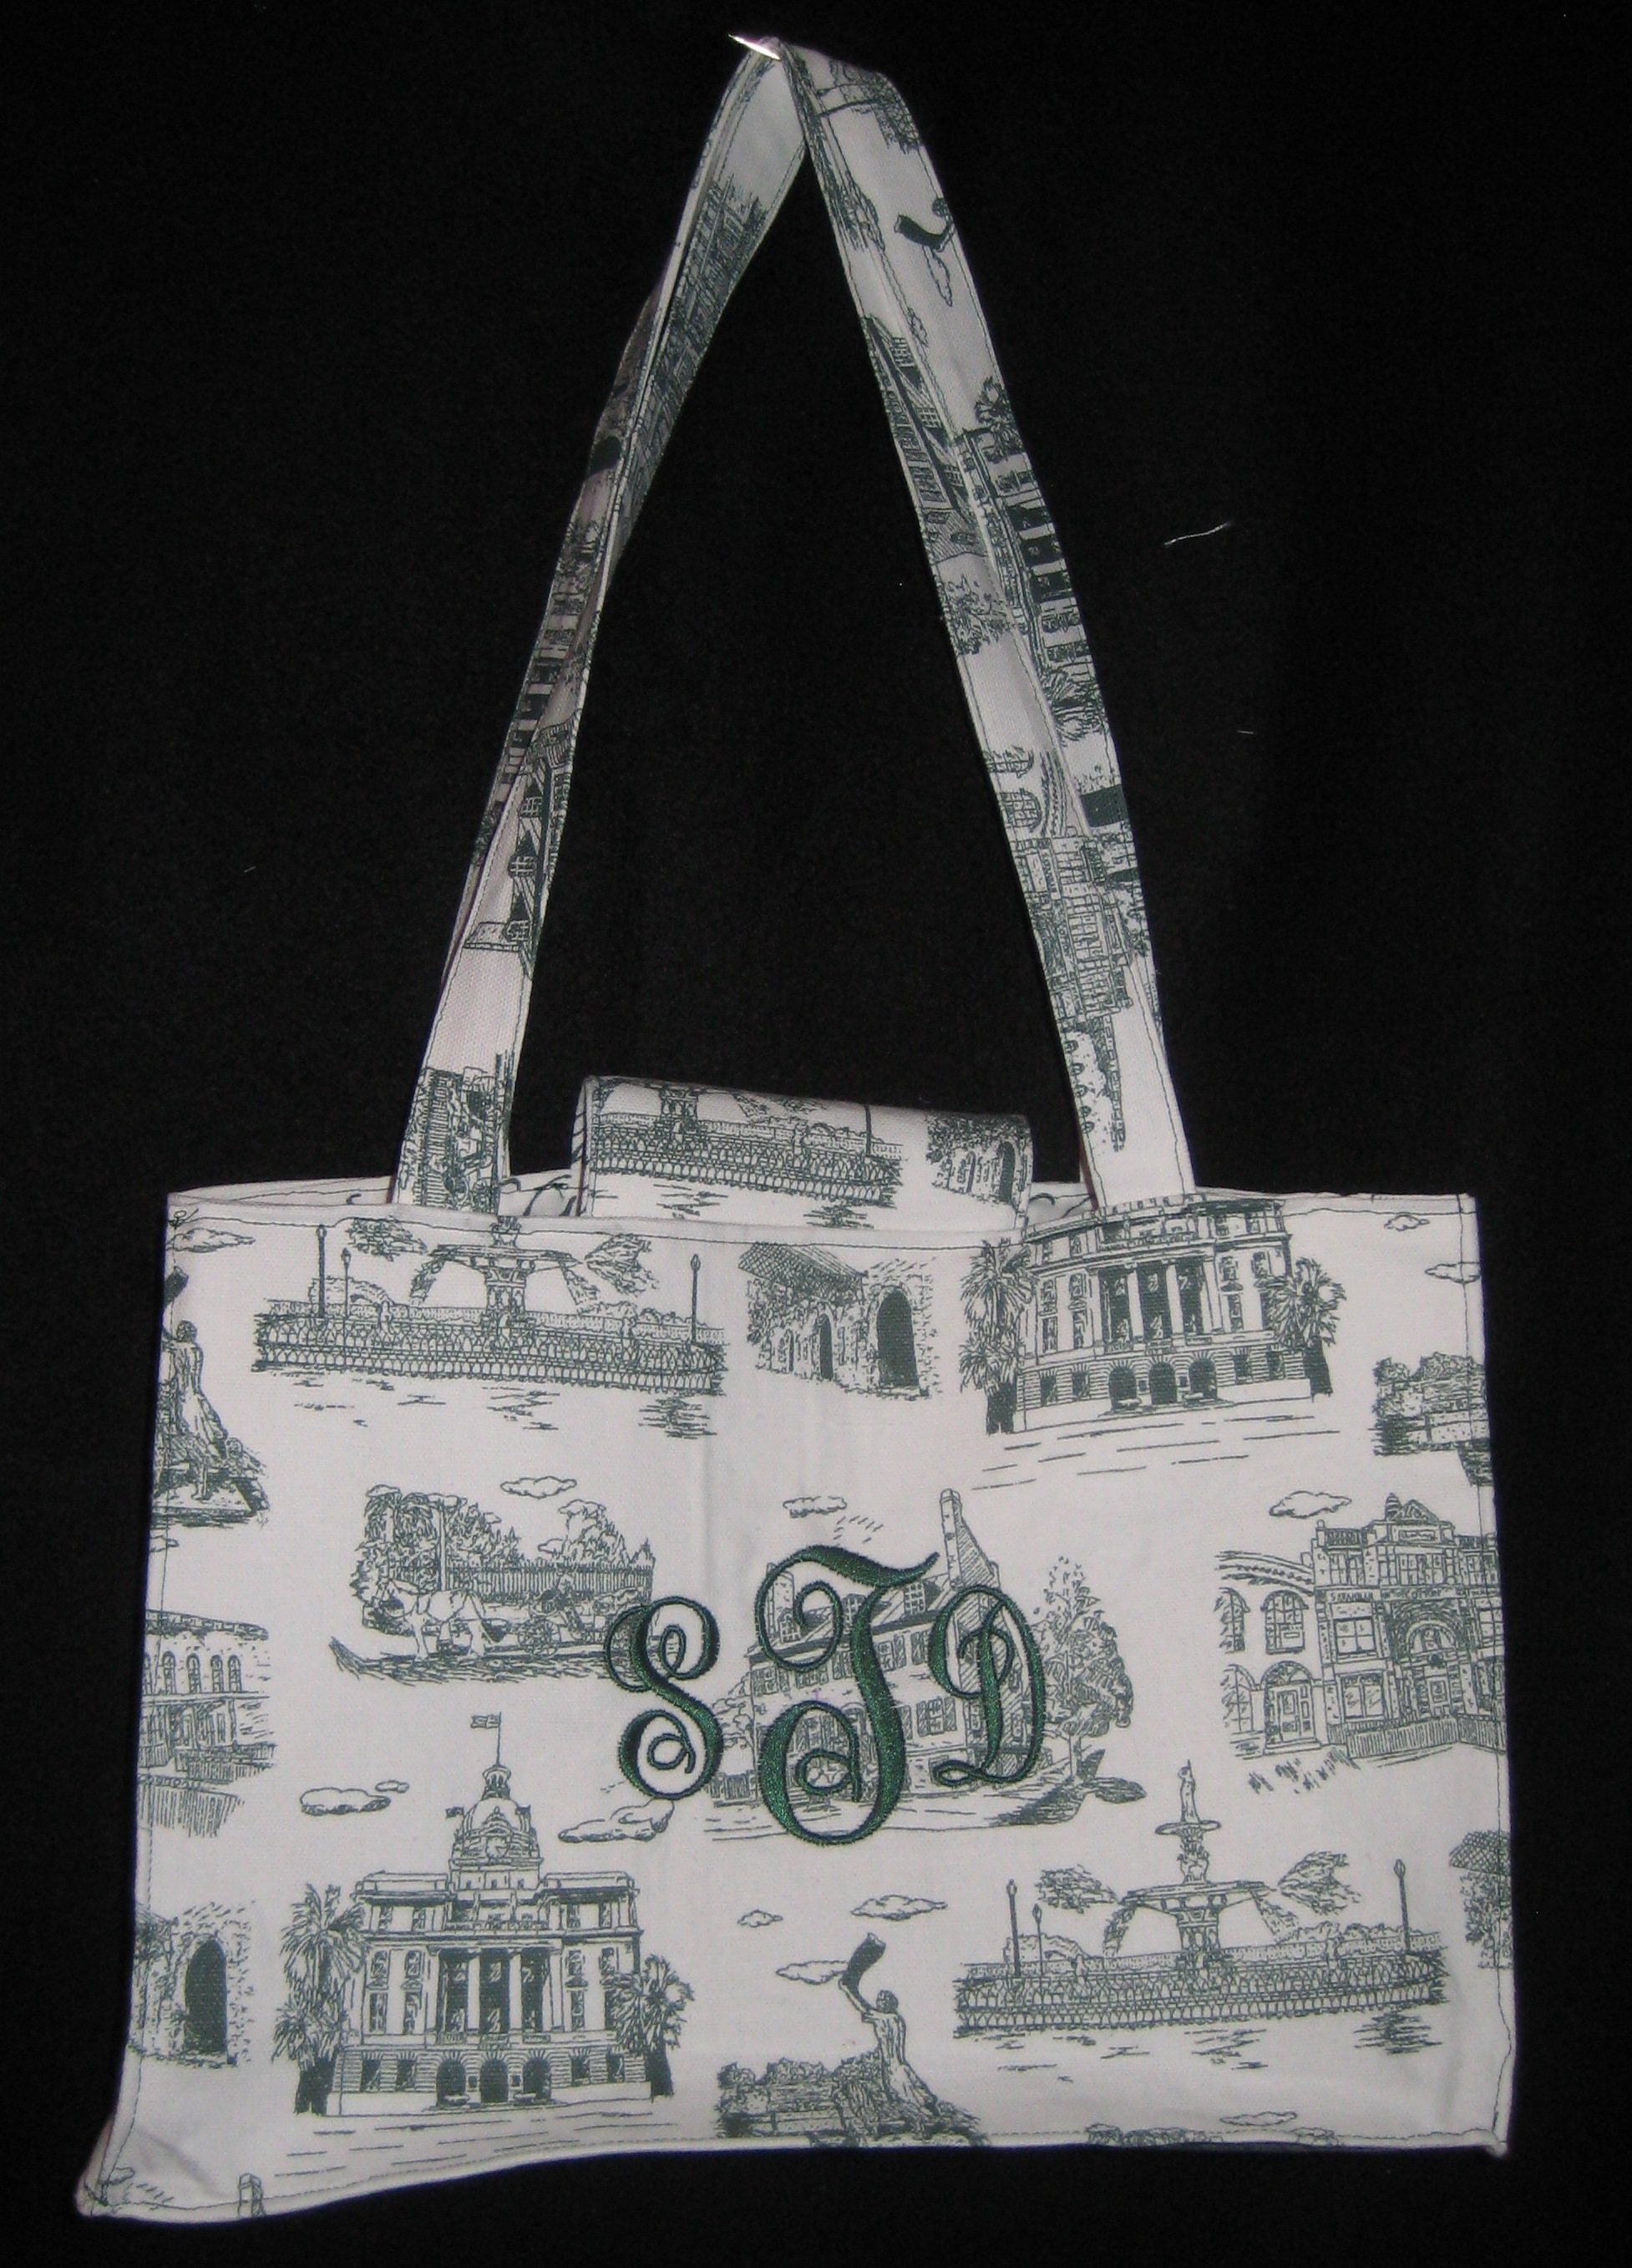 Savannah purse